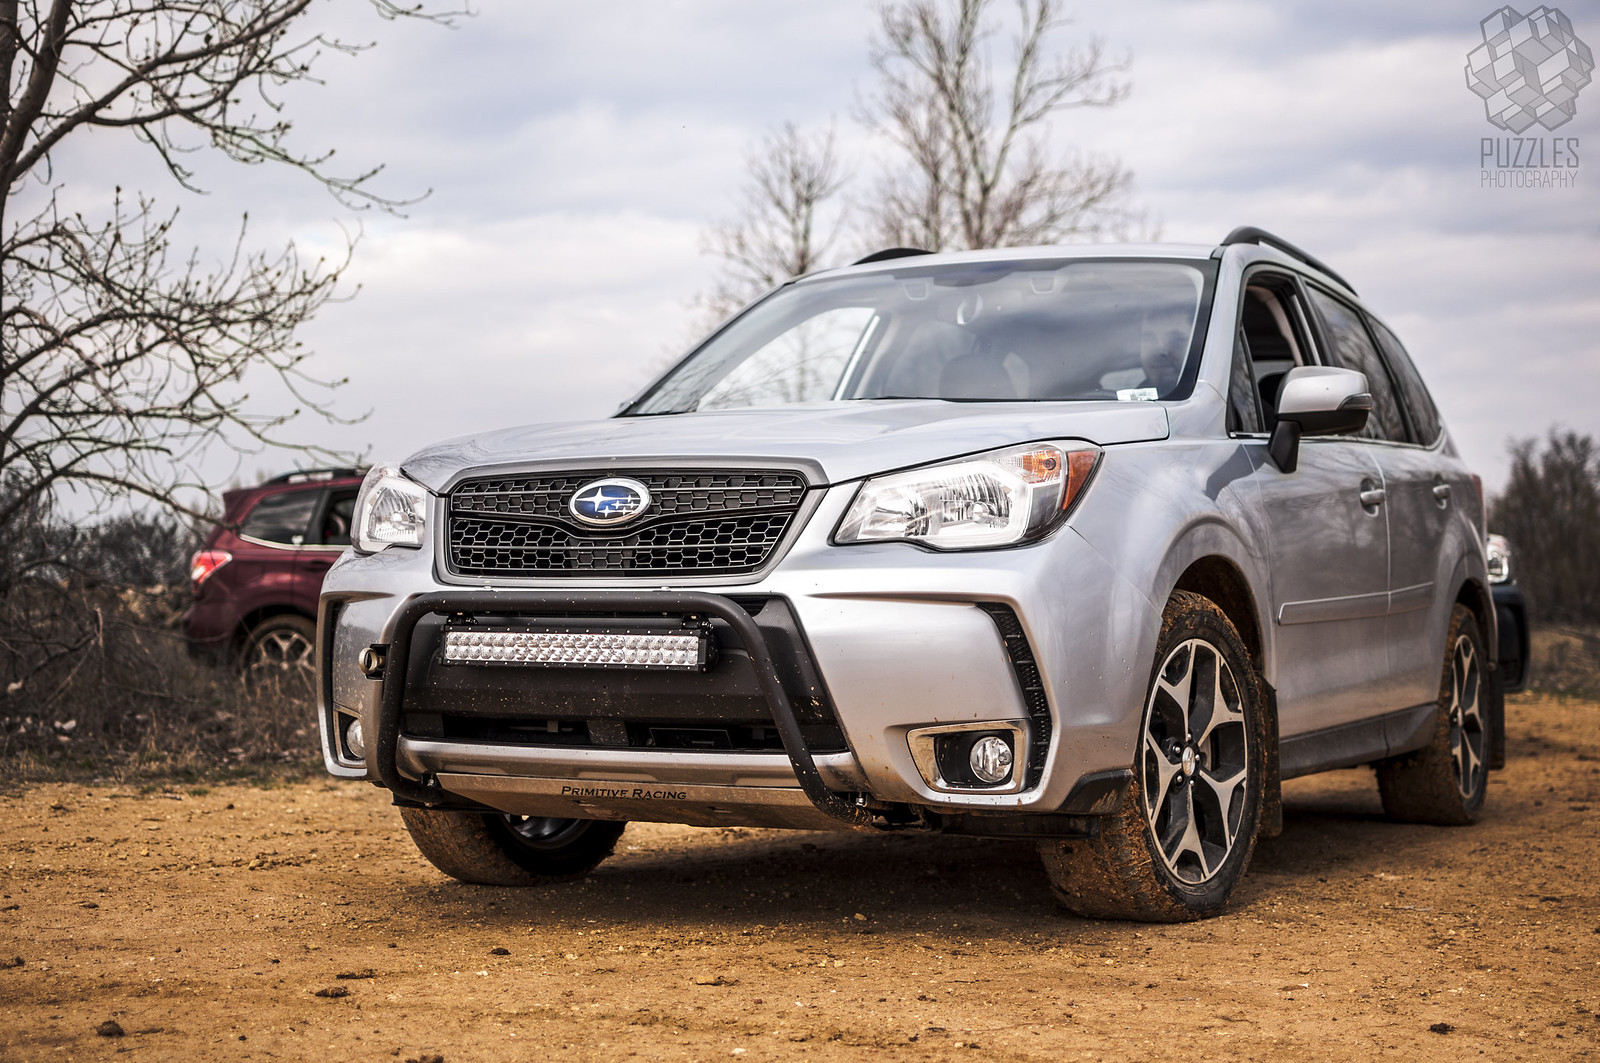 14 18 mounting auxiliary lights on front 2014 forester page 4 subaru forester owners forum